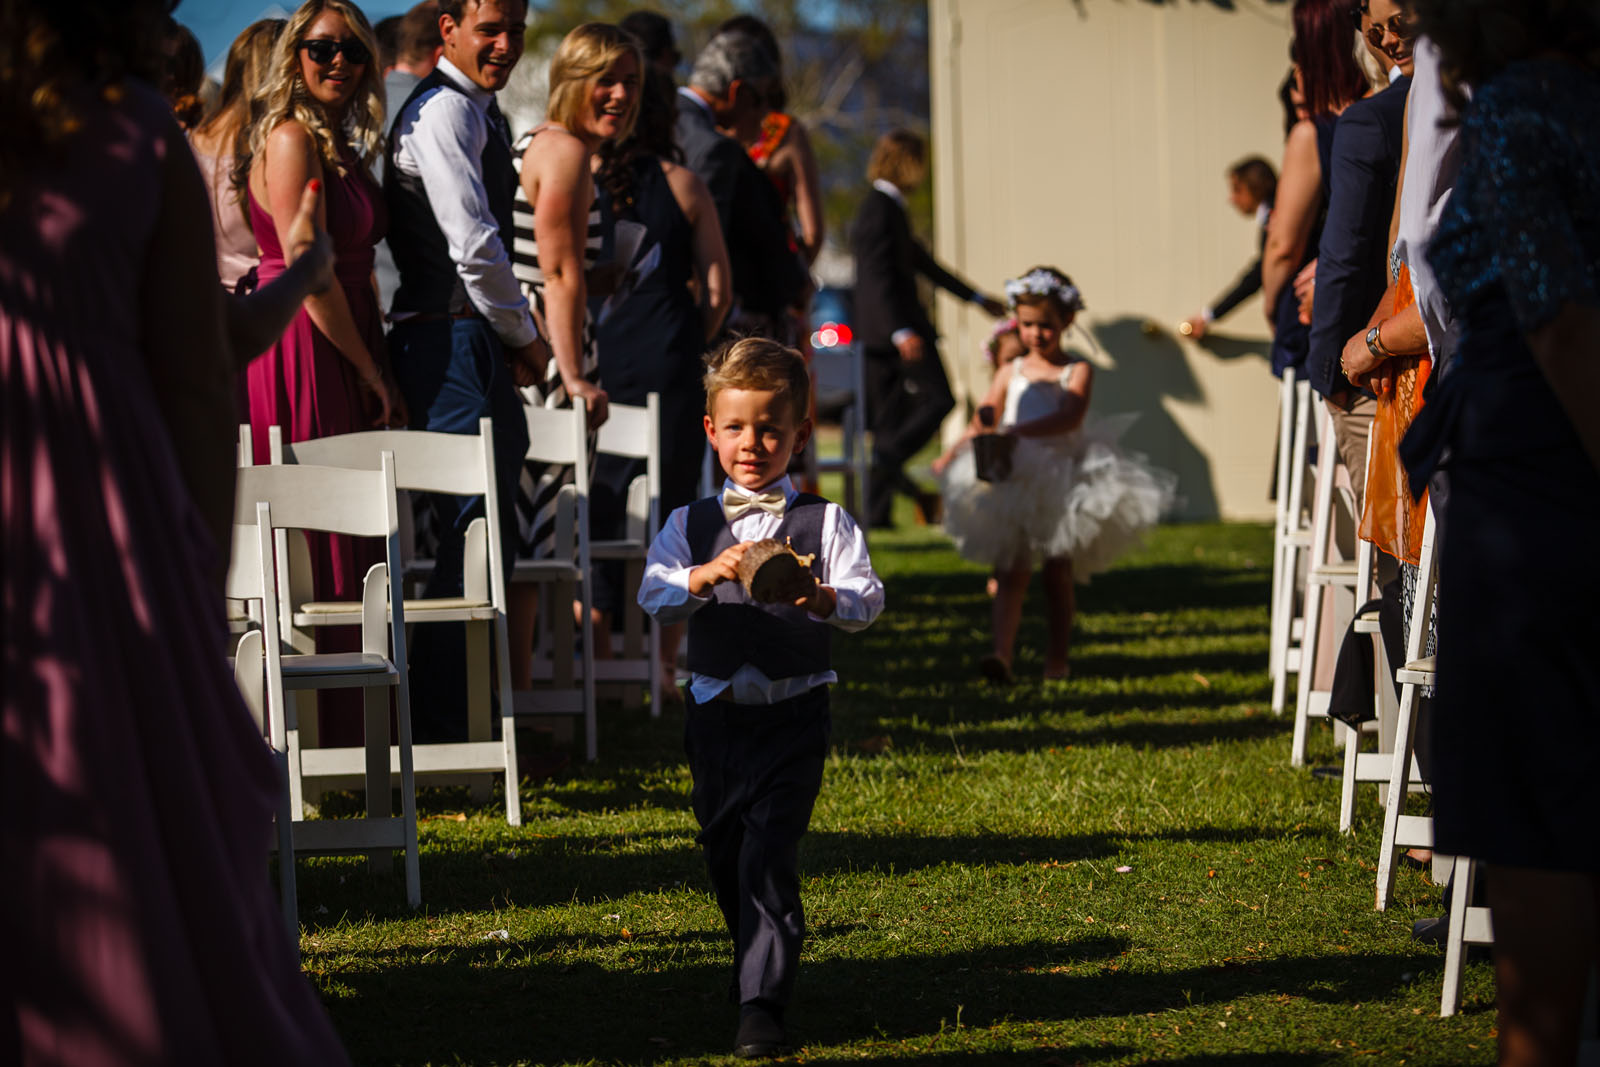 mount_tamborine_wedding_photographer_197